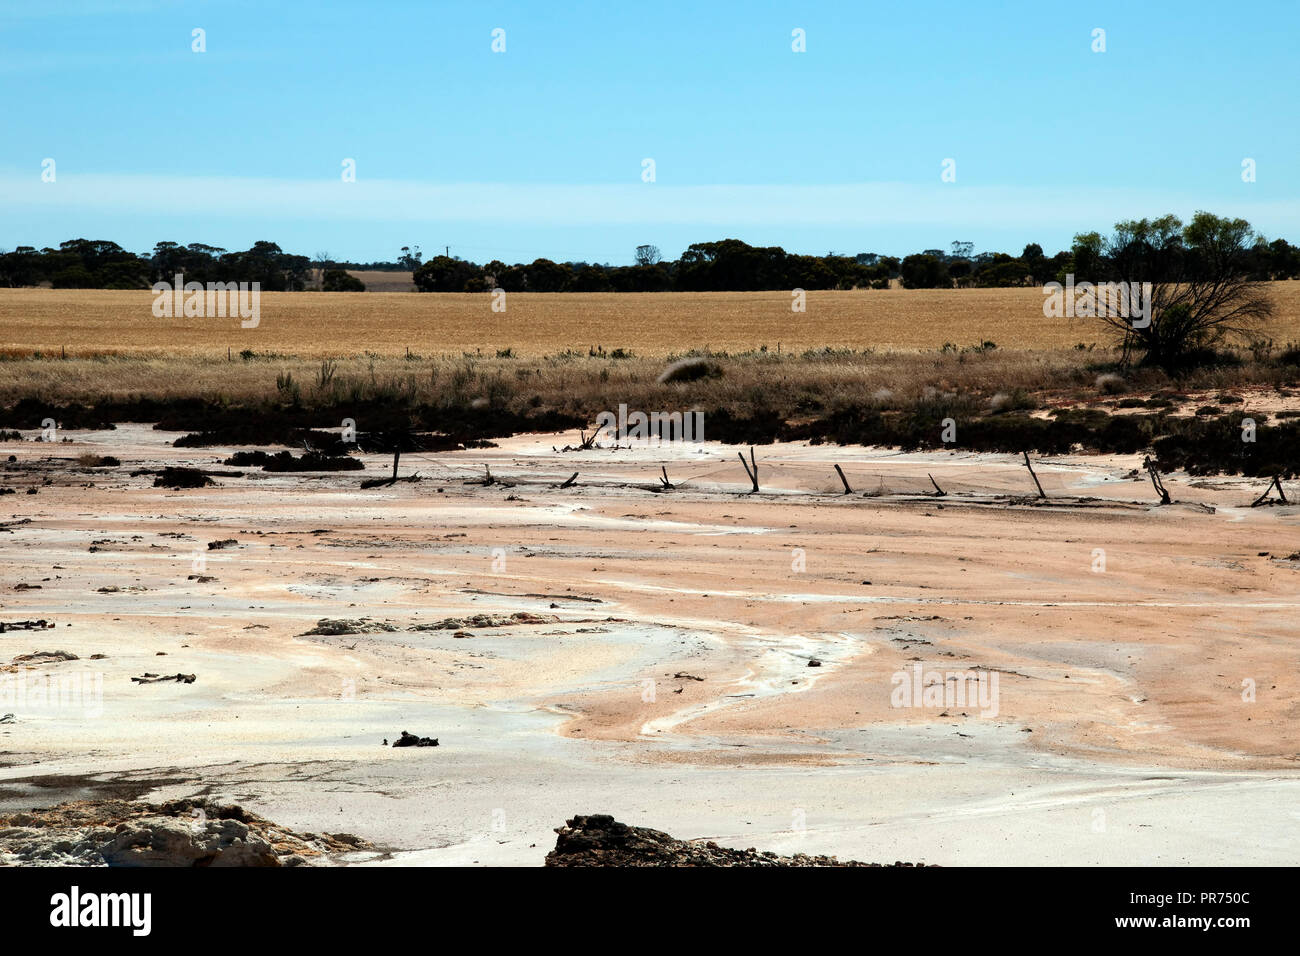 Chinocup Nature Reserve Western Australia, landscape of dry salt bed with wheat crop in background - Stock Image